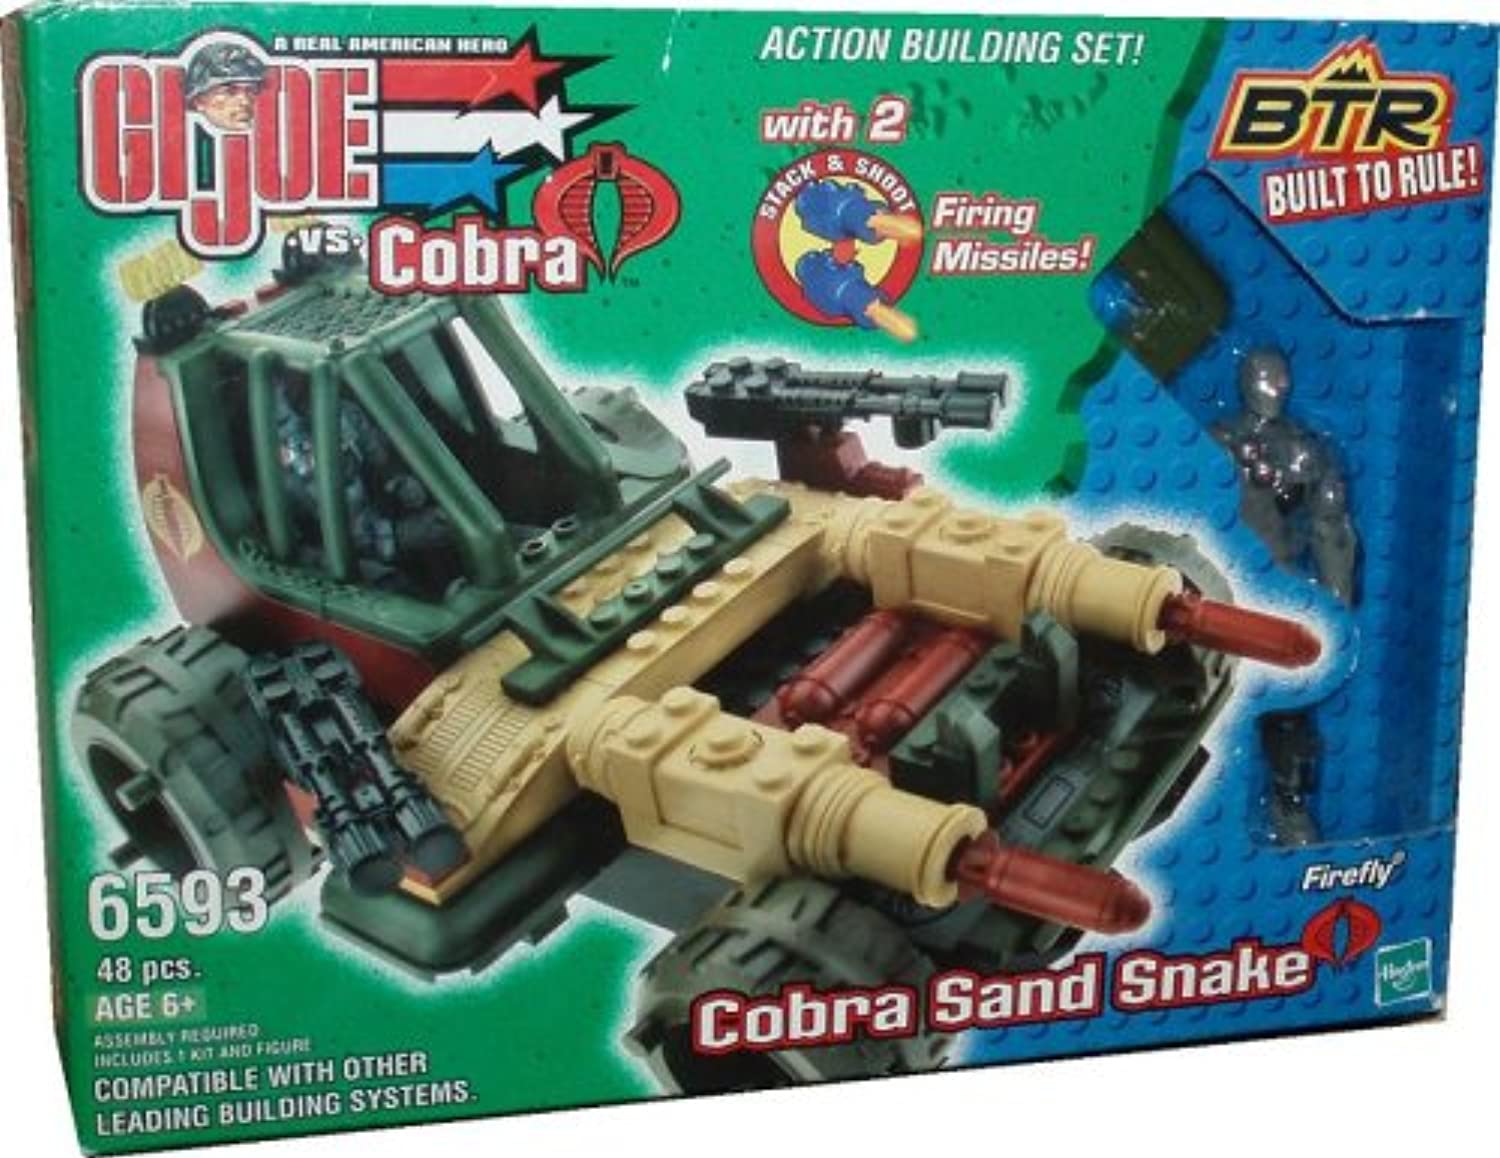 G.I. Joe vs Cobra Year 2003 Built to Rule BTR Action Building Set Vehicle  Cobra Sand Snake with 2 Firing Missiles and 4 Inch Tall Firefly Figure